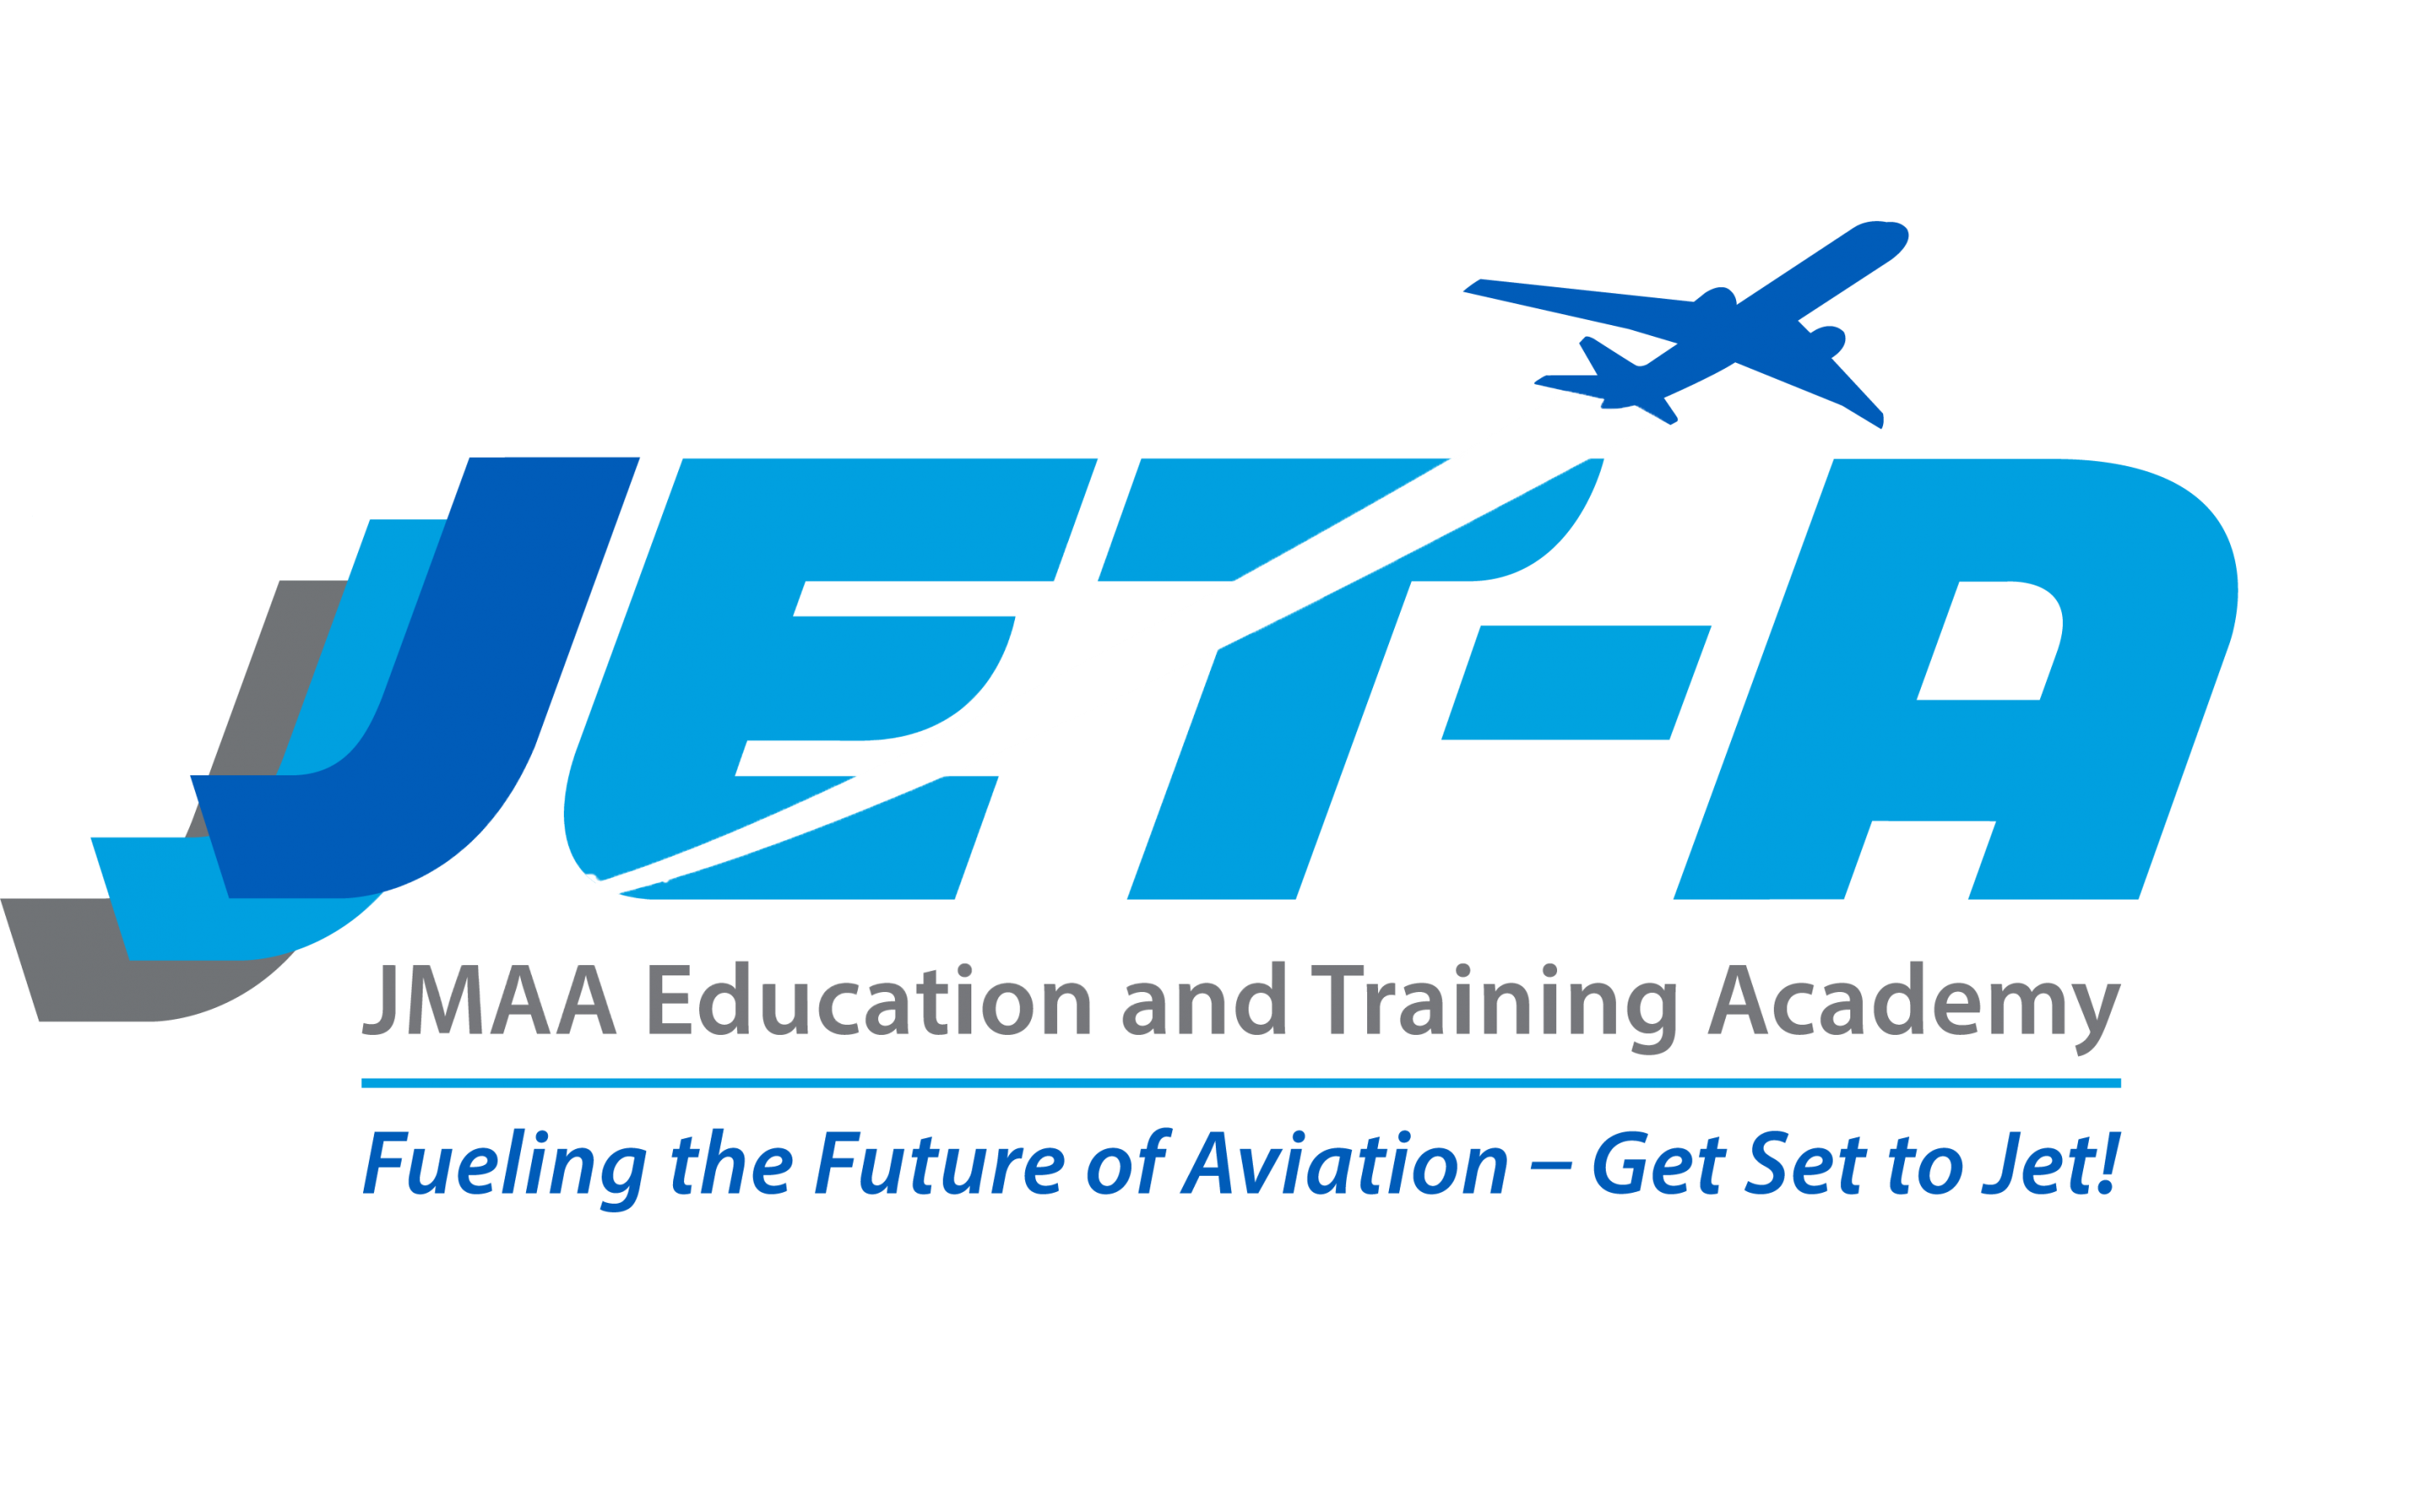 Jackson Municipal Airport Authority Partners with Jackson Public Schools and Jackson State University to Launch Inaugural Education and Training Academy